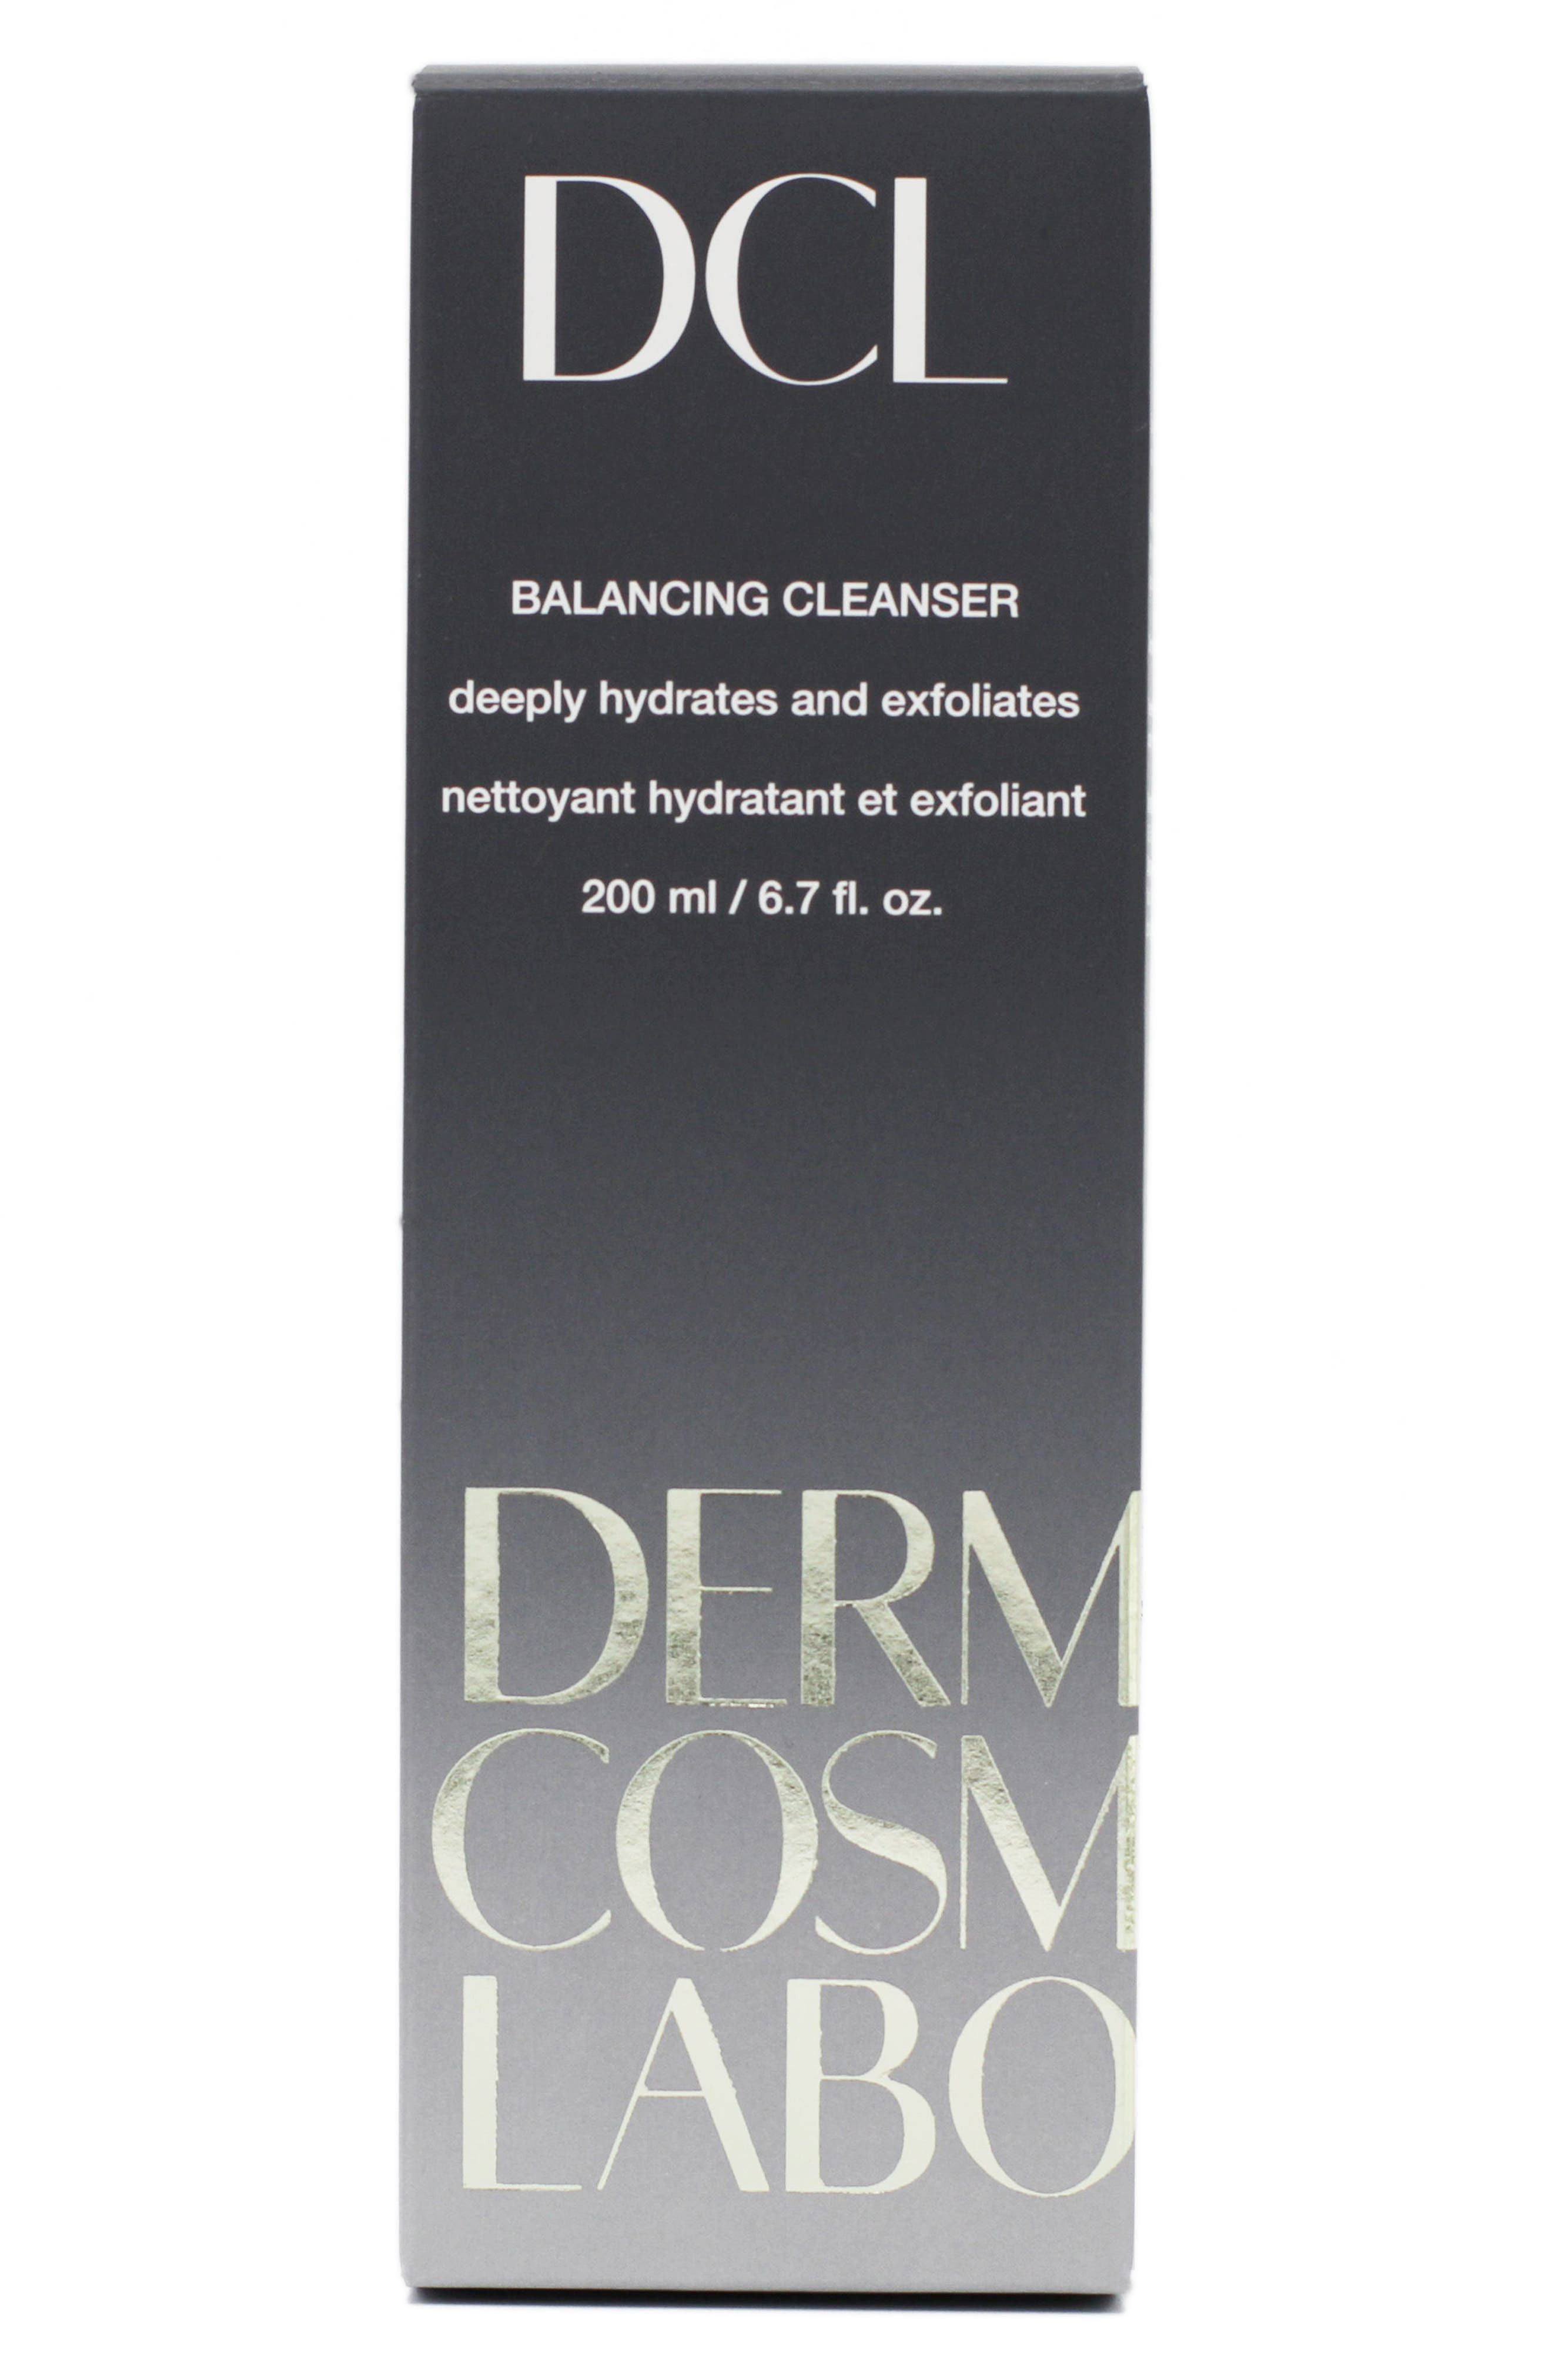 DERMATOLOGIC COSMETIC LABORATORIES, Balancing Cleanser, Alternate thumbnail 2, color, 000